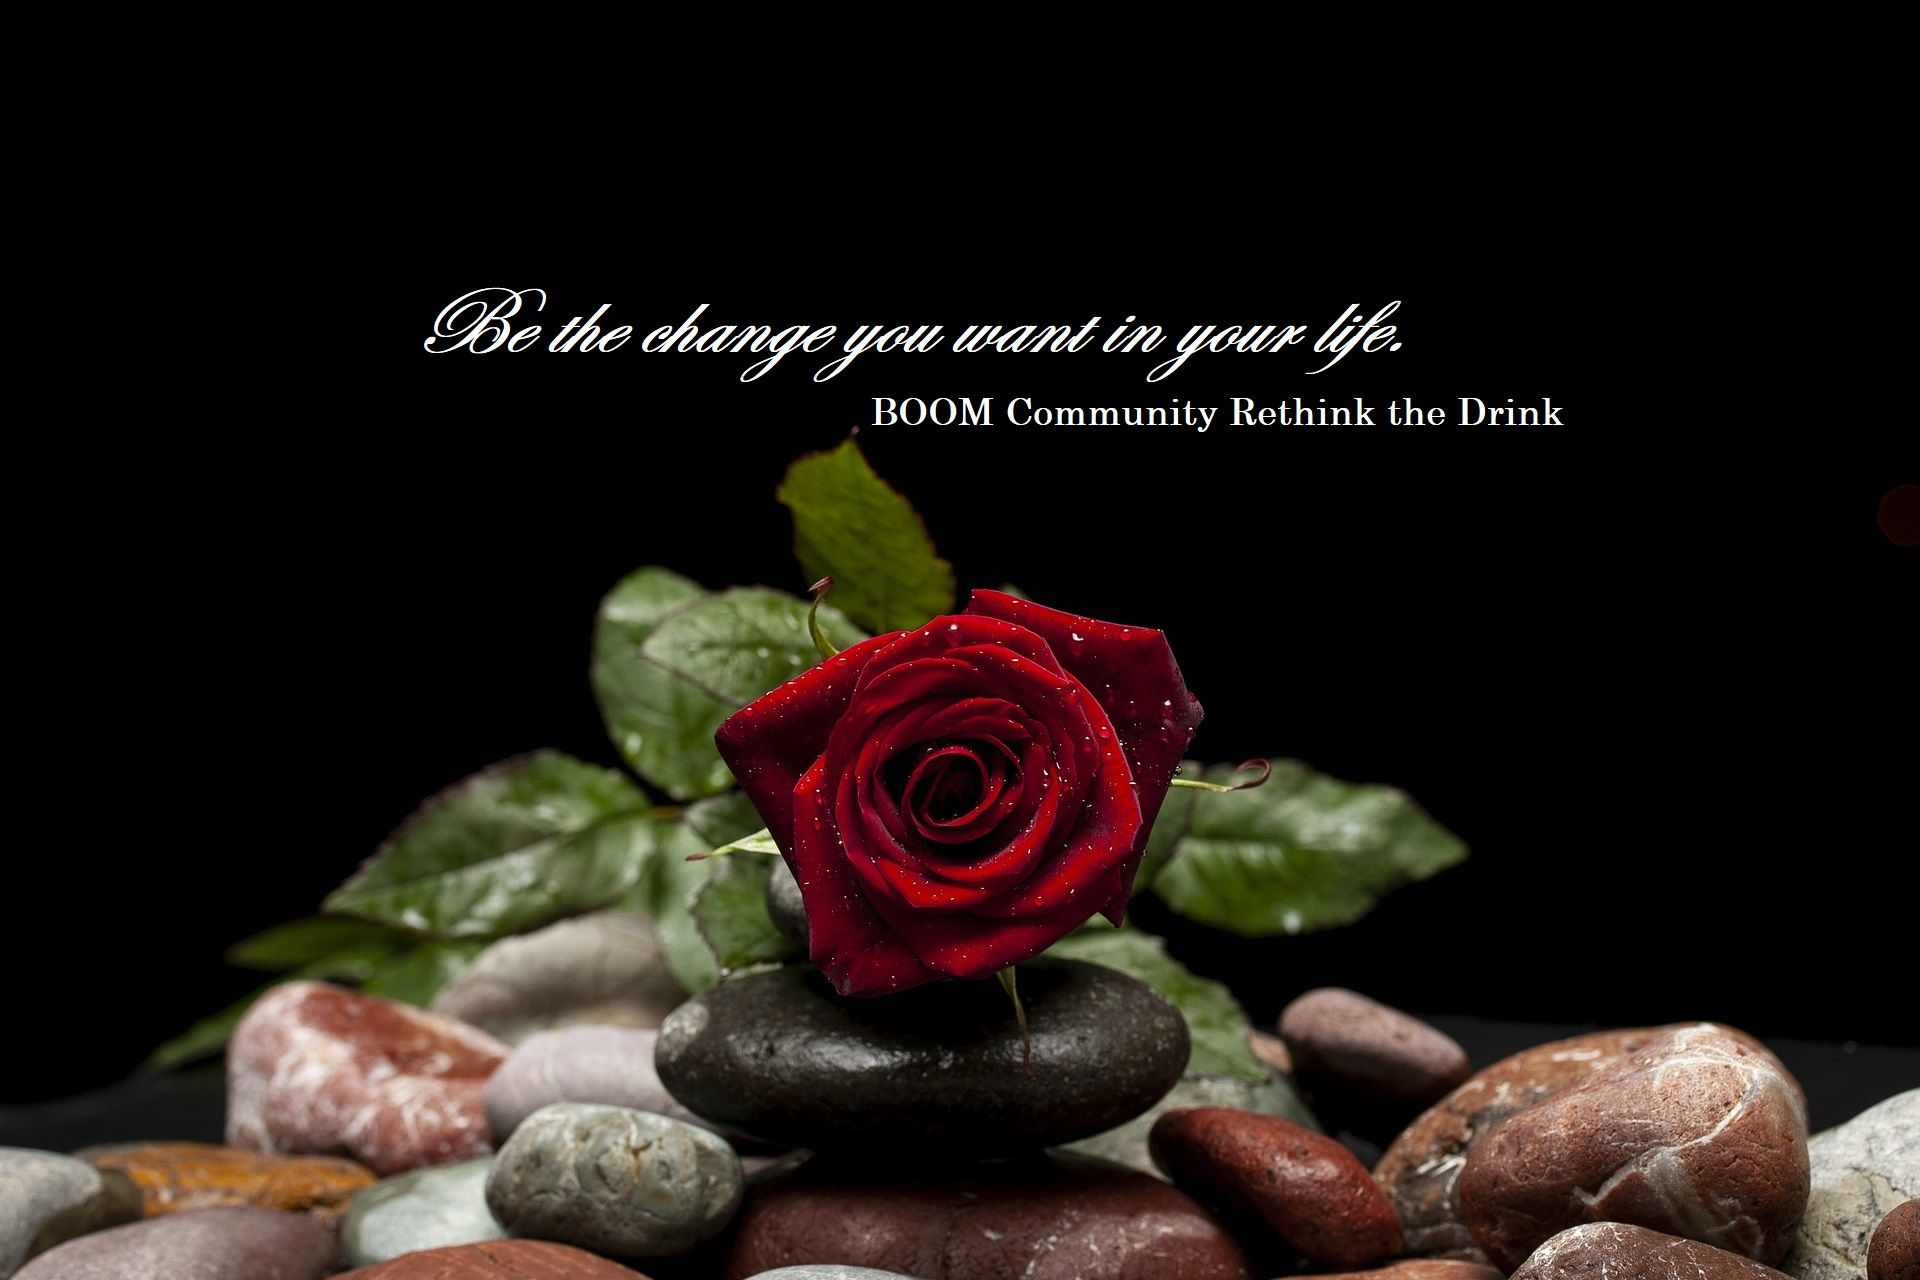 Red rose, invitation to join BOOM Community for alcohol free relationships